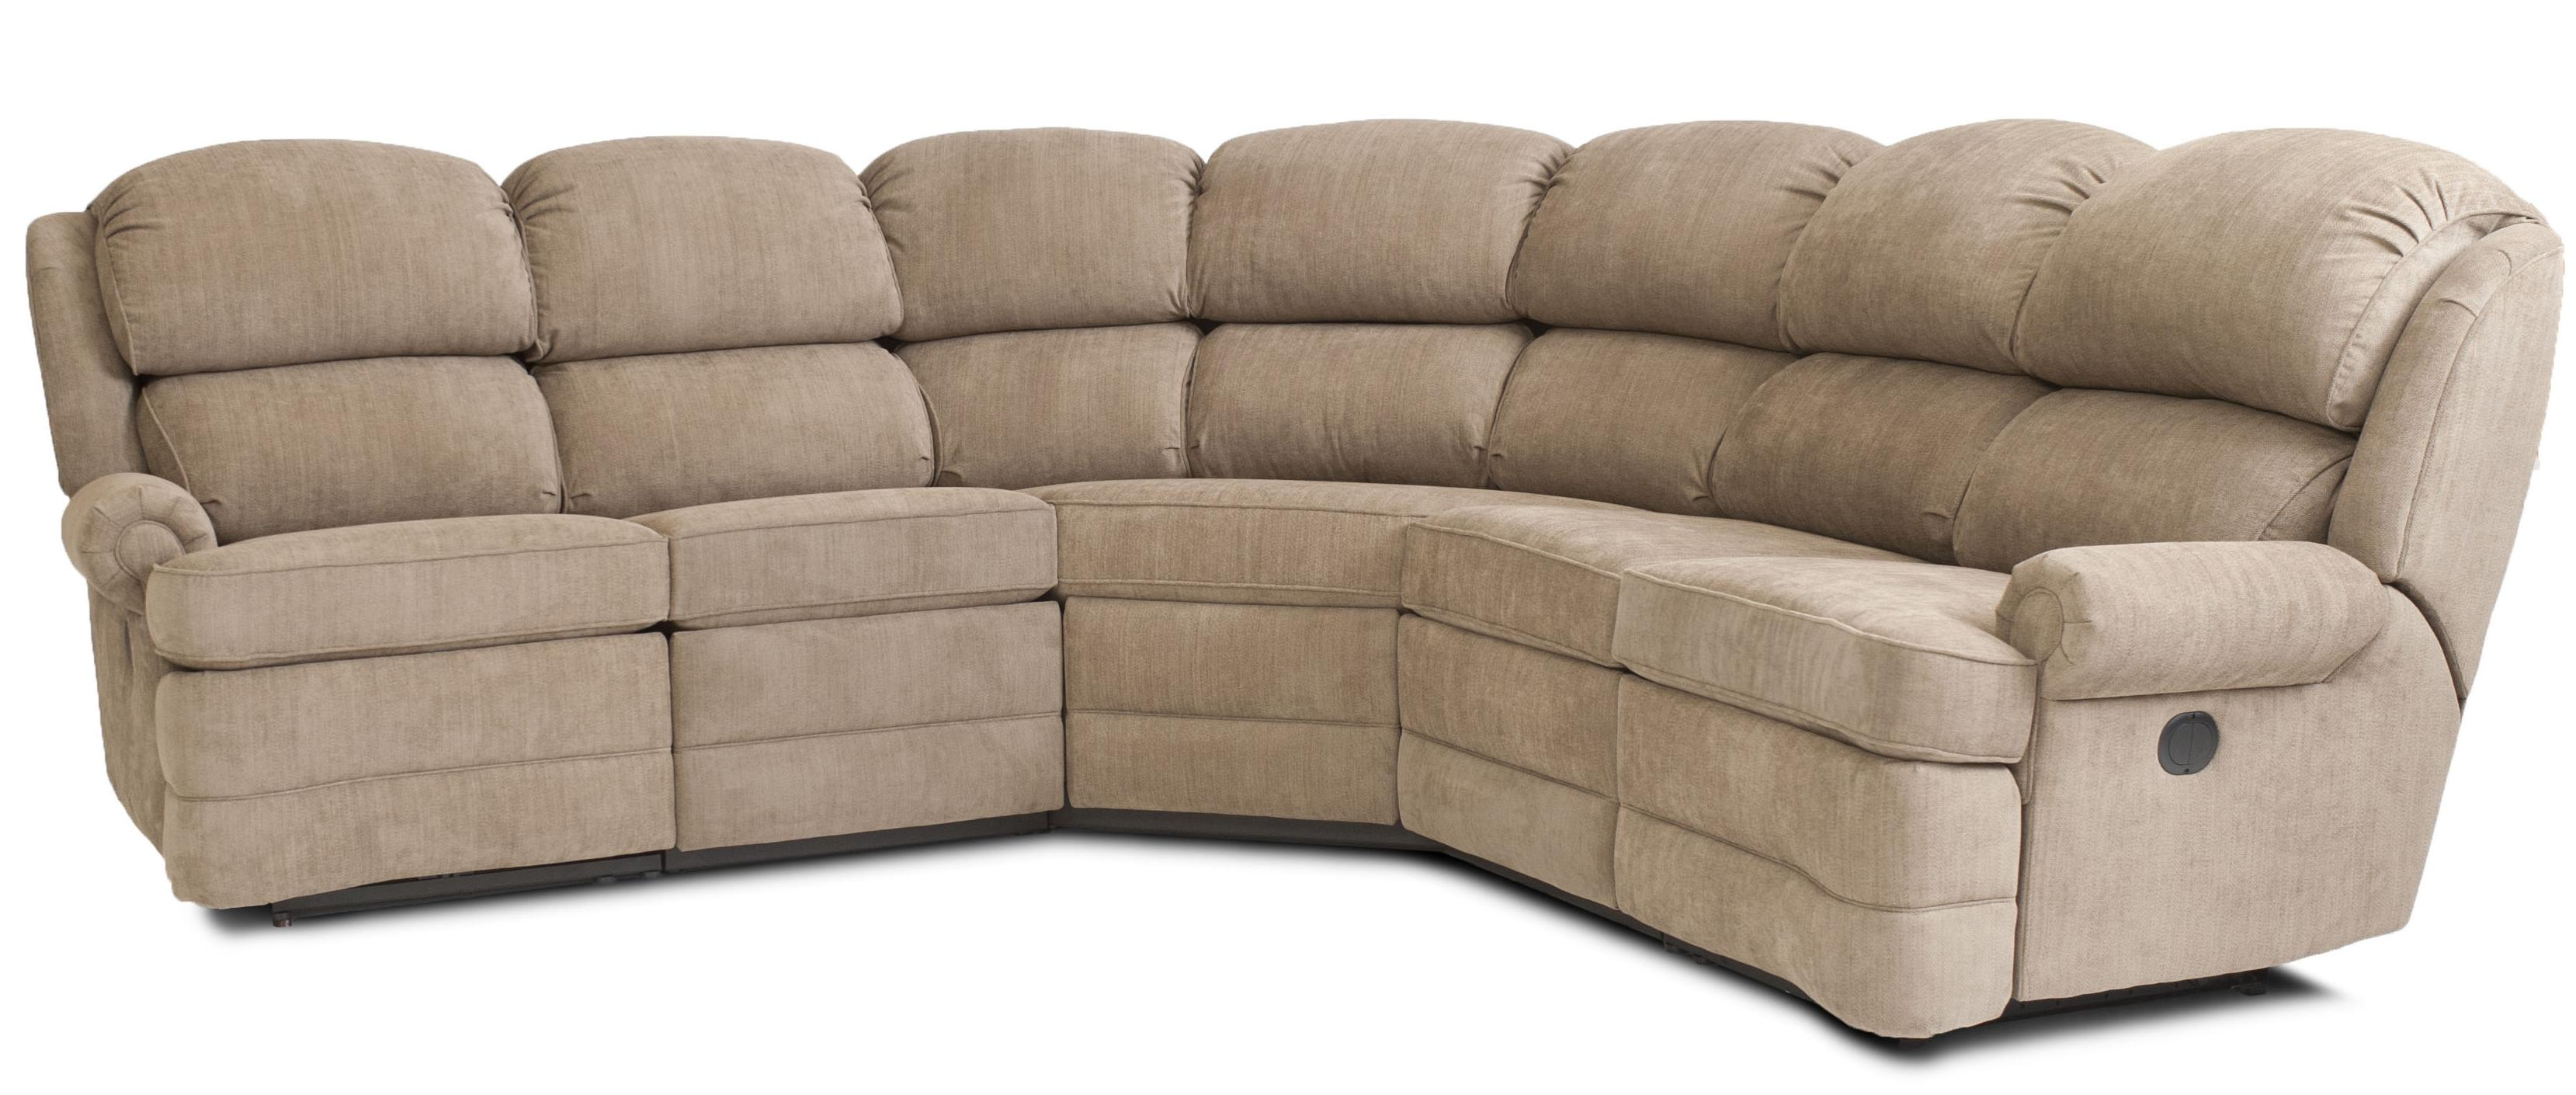 transitional 5 reclining sectional sofa with small rolled arms